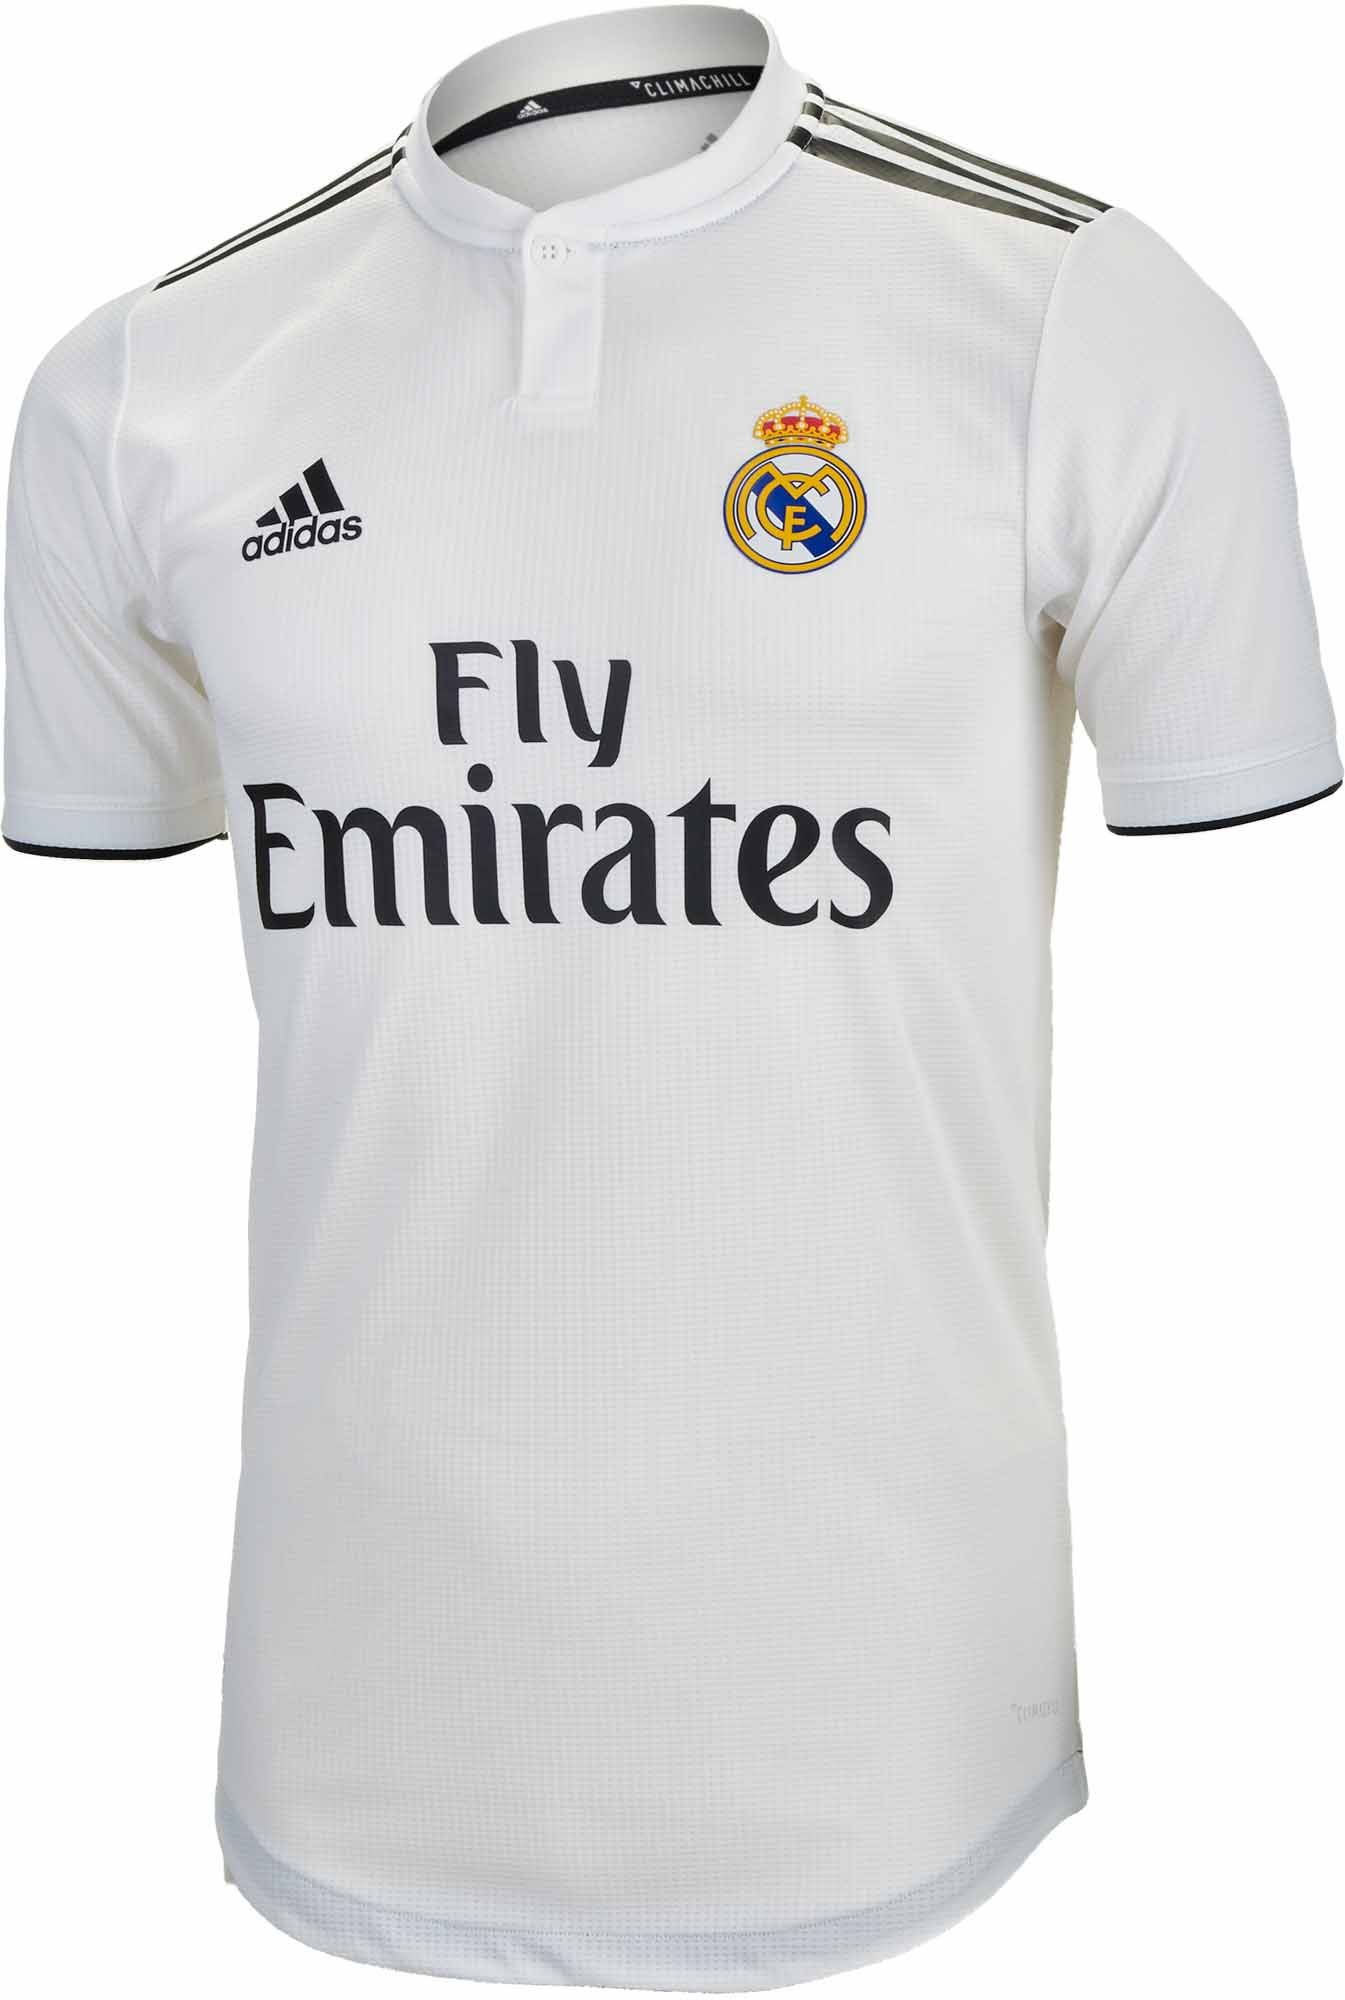 36f4a908050 2018/19 adidas Real Madrid Authentic Home Jersey. Fresh at www.soccerpro.com